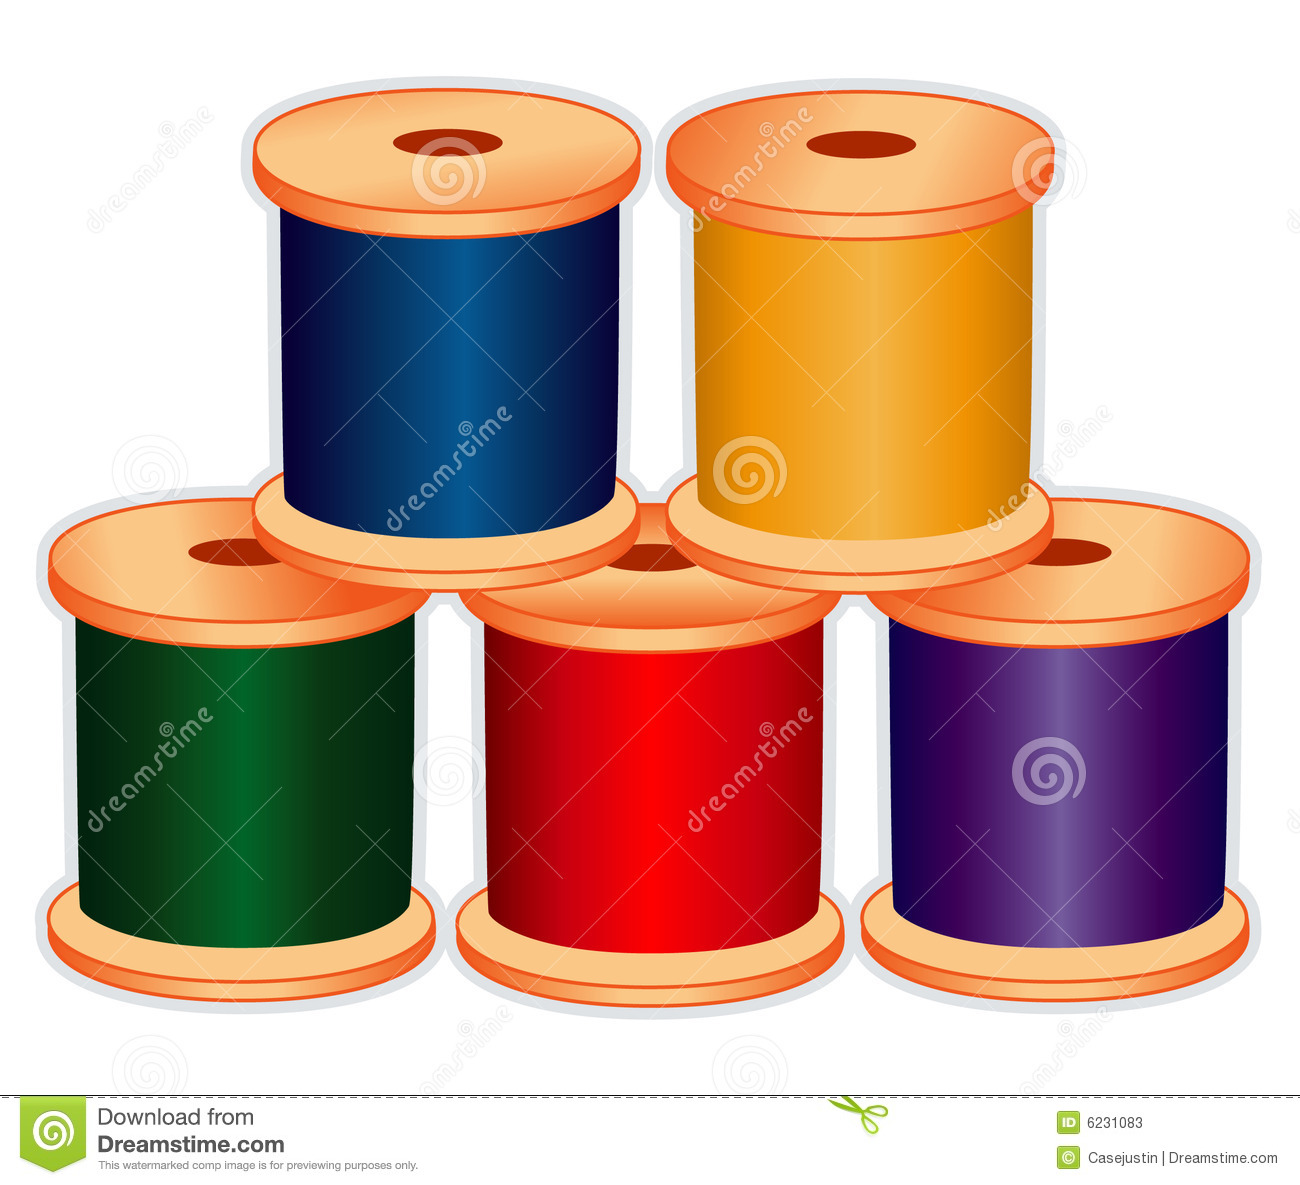 Spools Of Thread In Jewel Tones Stock Vector Illustration Of